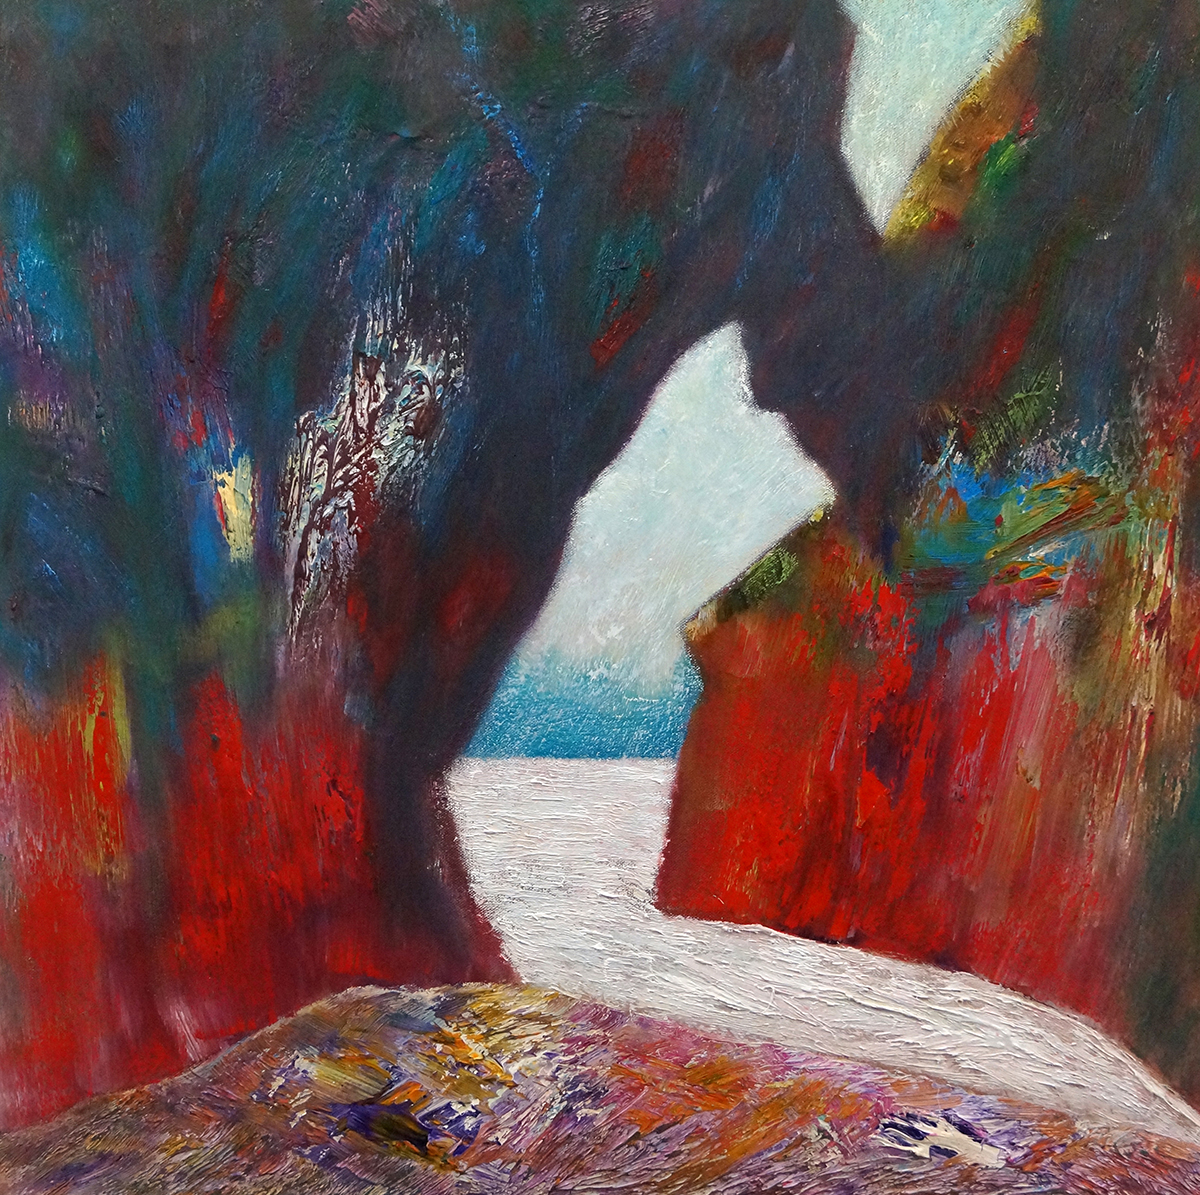 Out of Darkness - Oil on Canvas - 61cm x 61cm